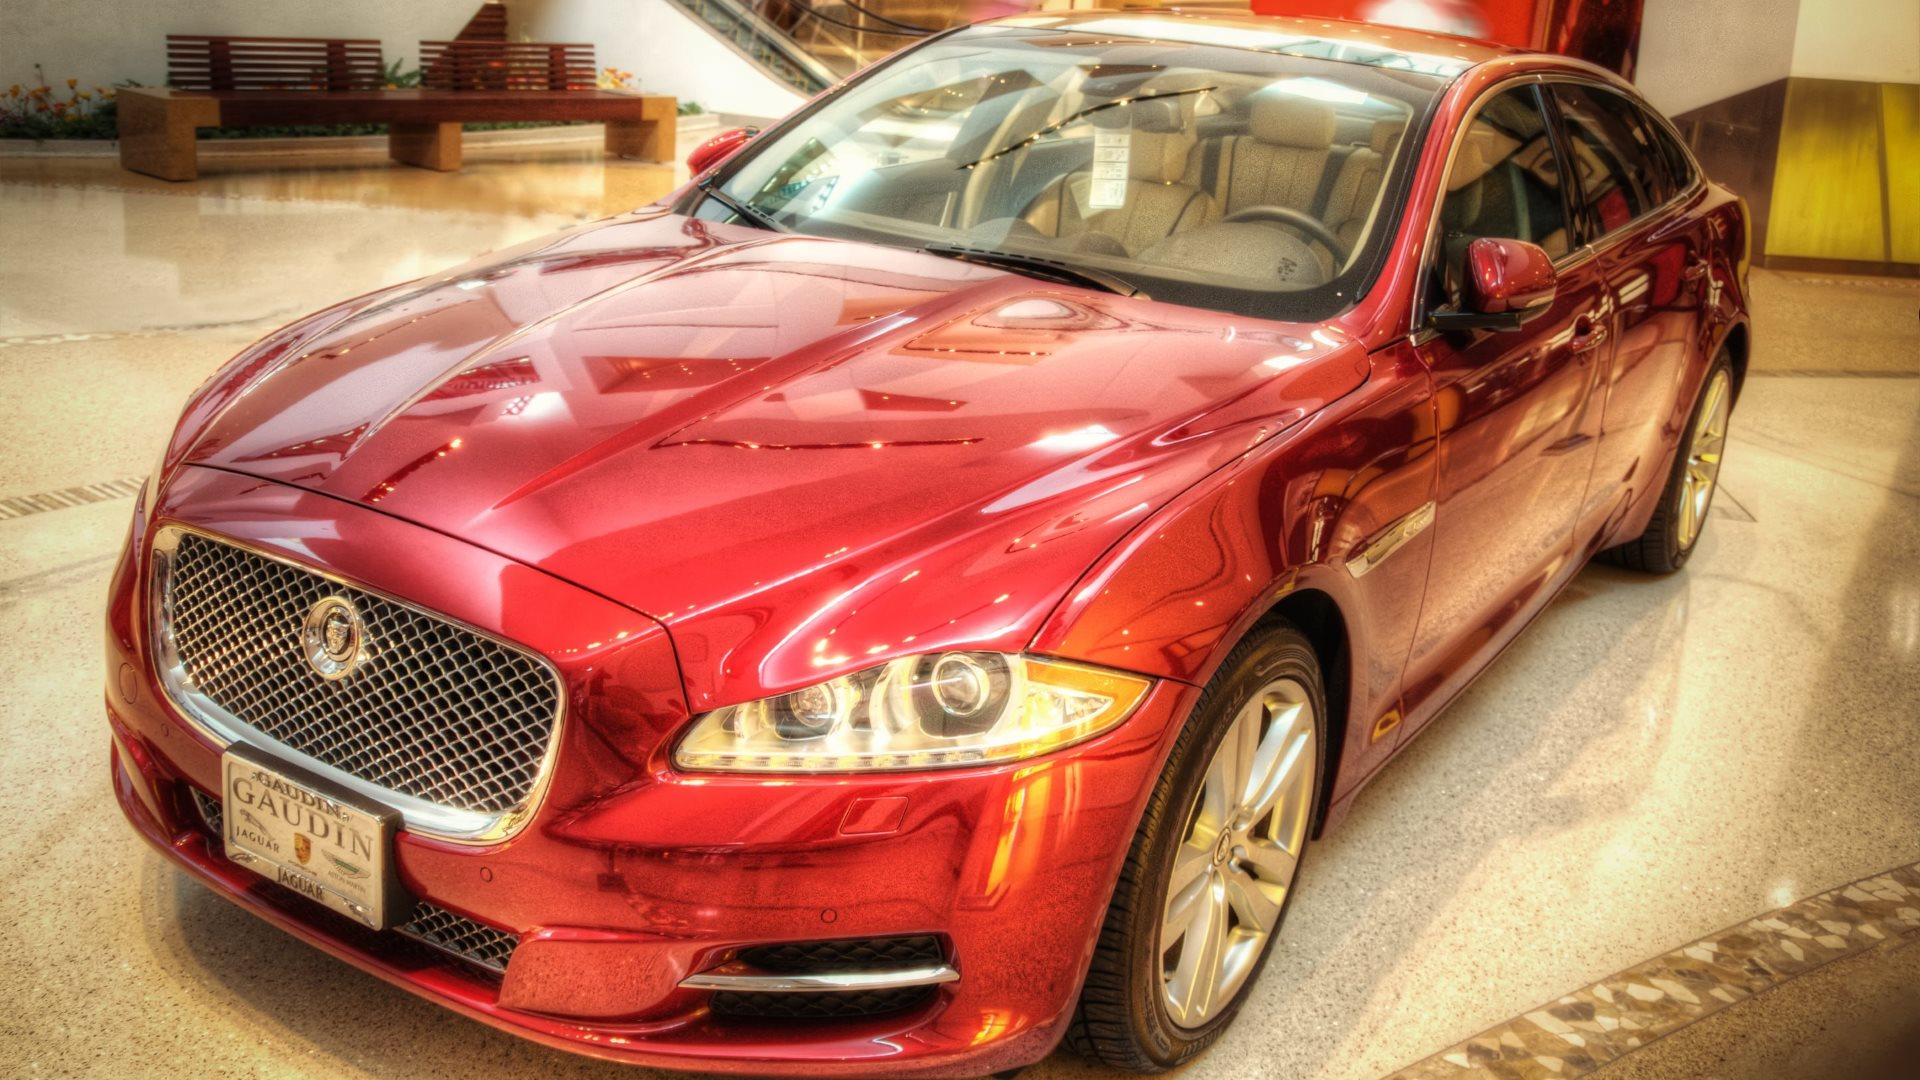 Red Jaguar Car Wallpaper Hd